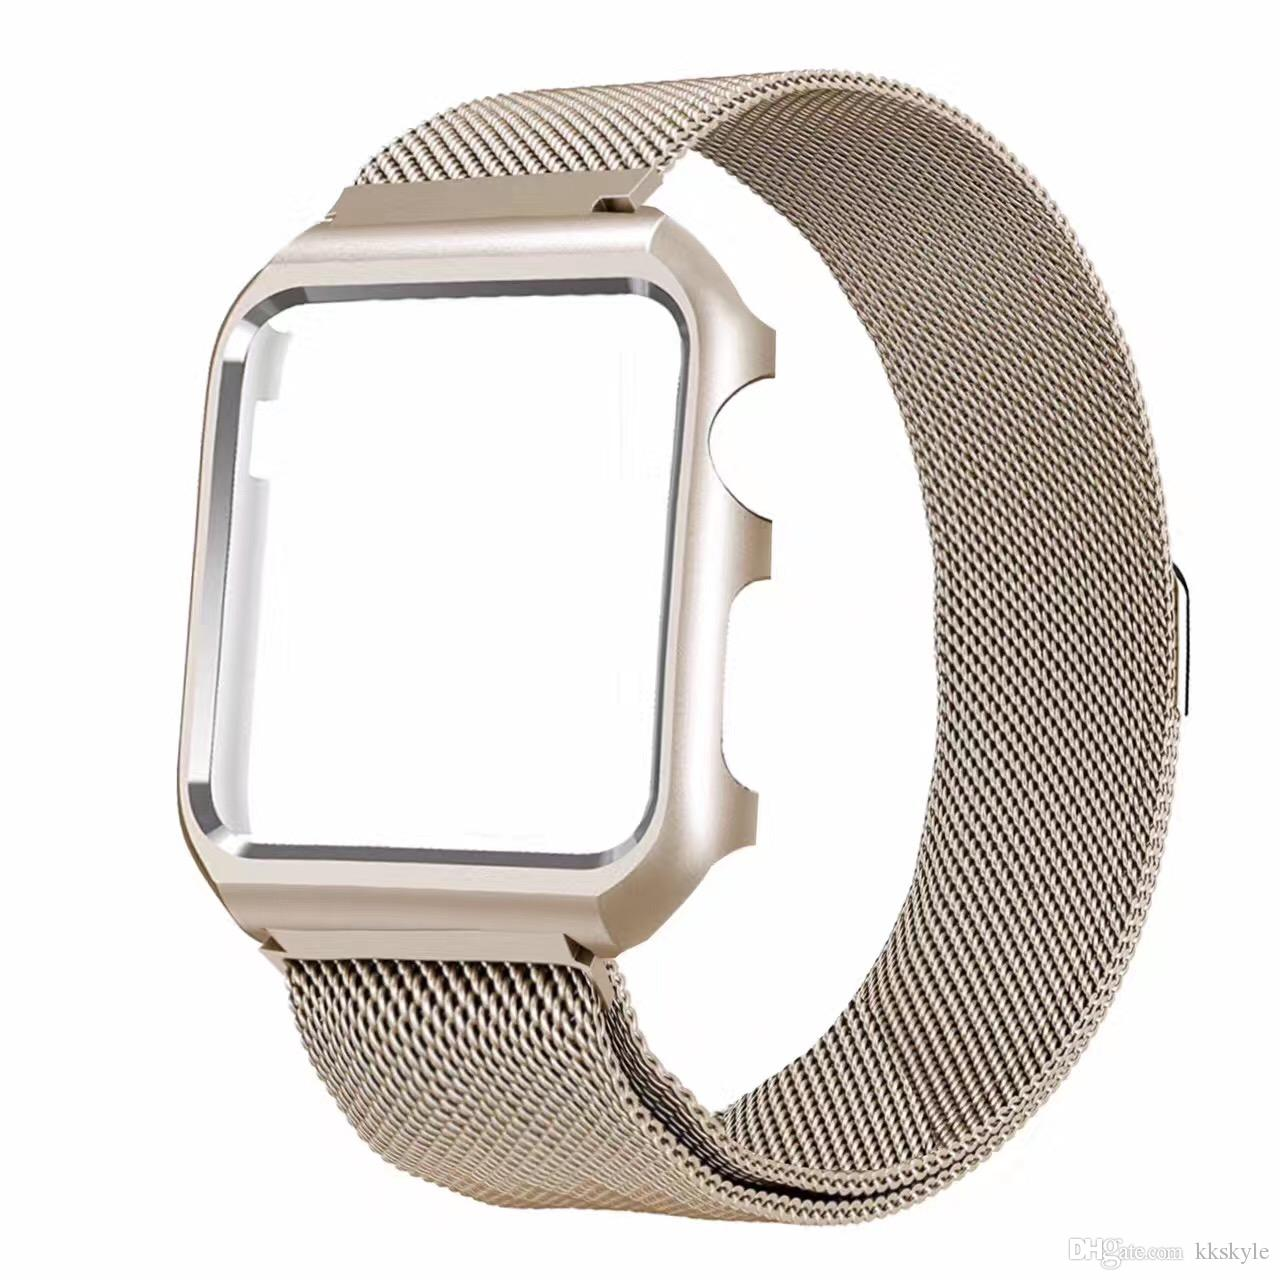 Apple Watch Band 38mm 40mm 42mm 44mm,Milanese Loop Stainless Steel Magnetic Band with Metal Case for Apple Watch Series 1/2/3/4/5